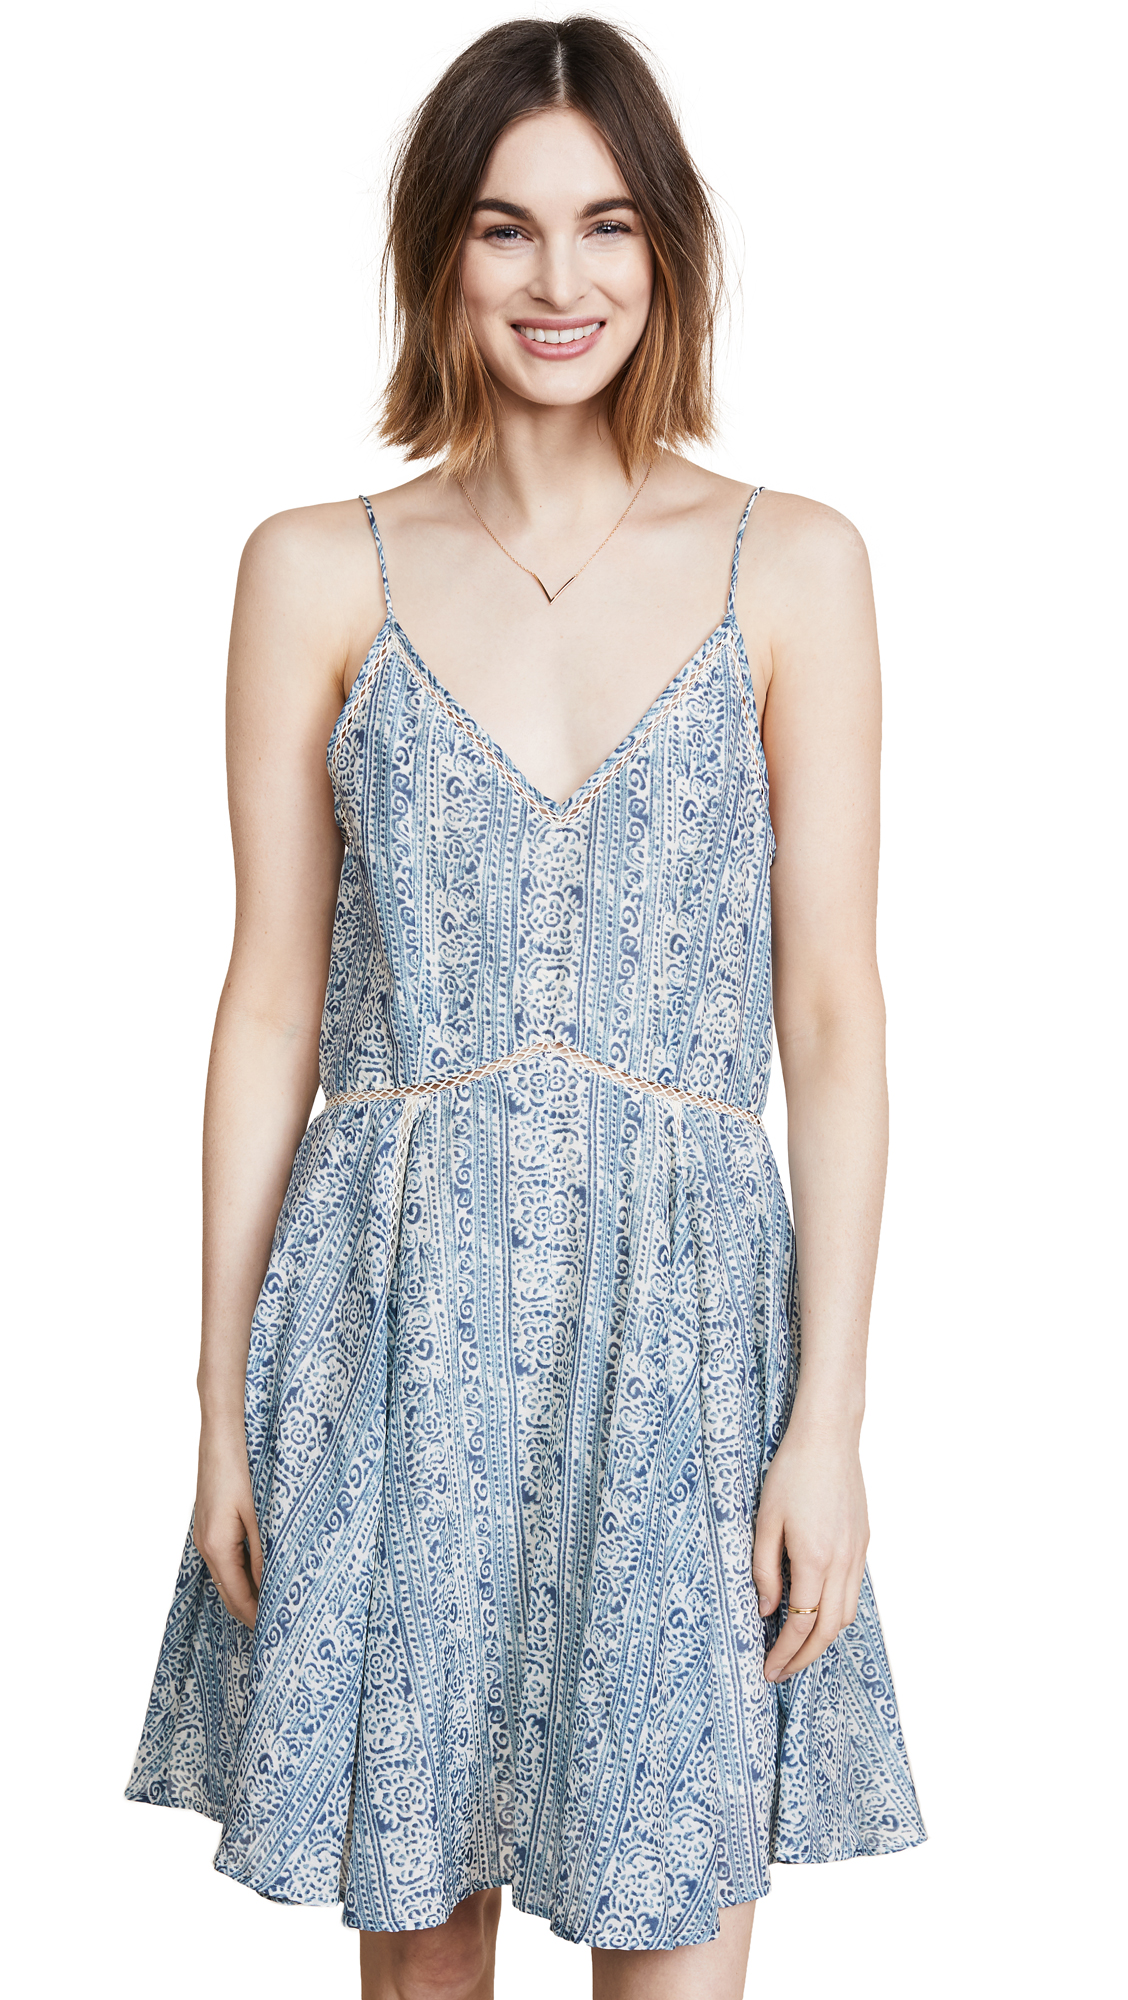 SCOTCH & SODA/MAISON SCOTCH COTTON SILK BEACH DRESS